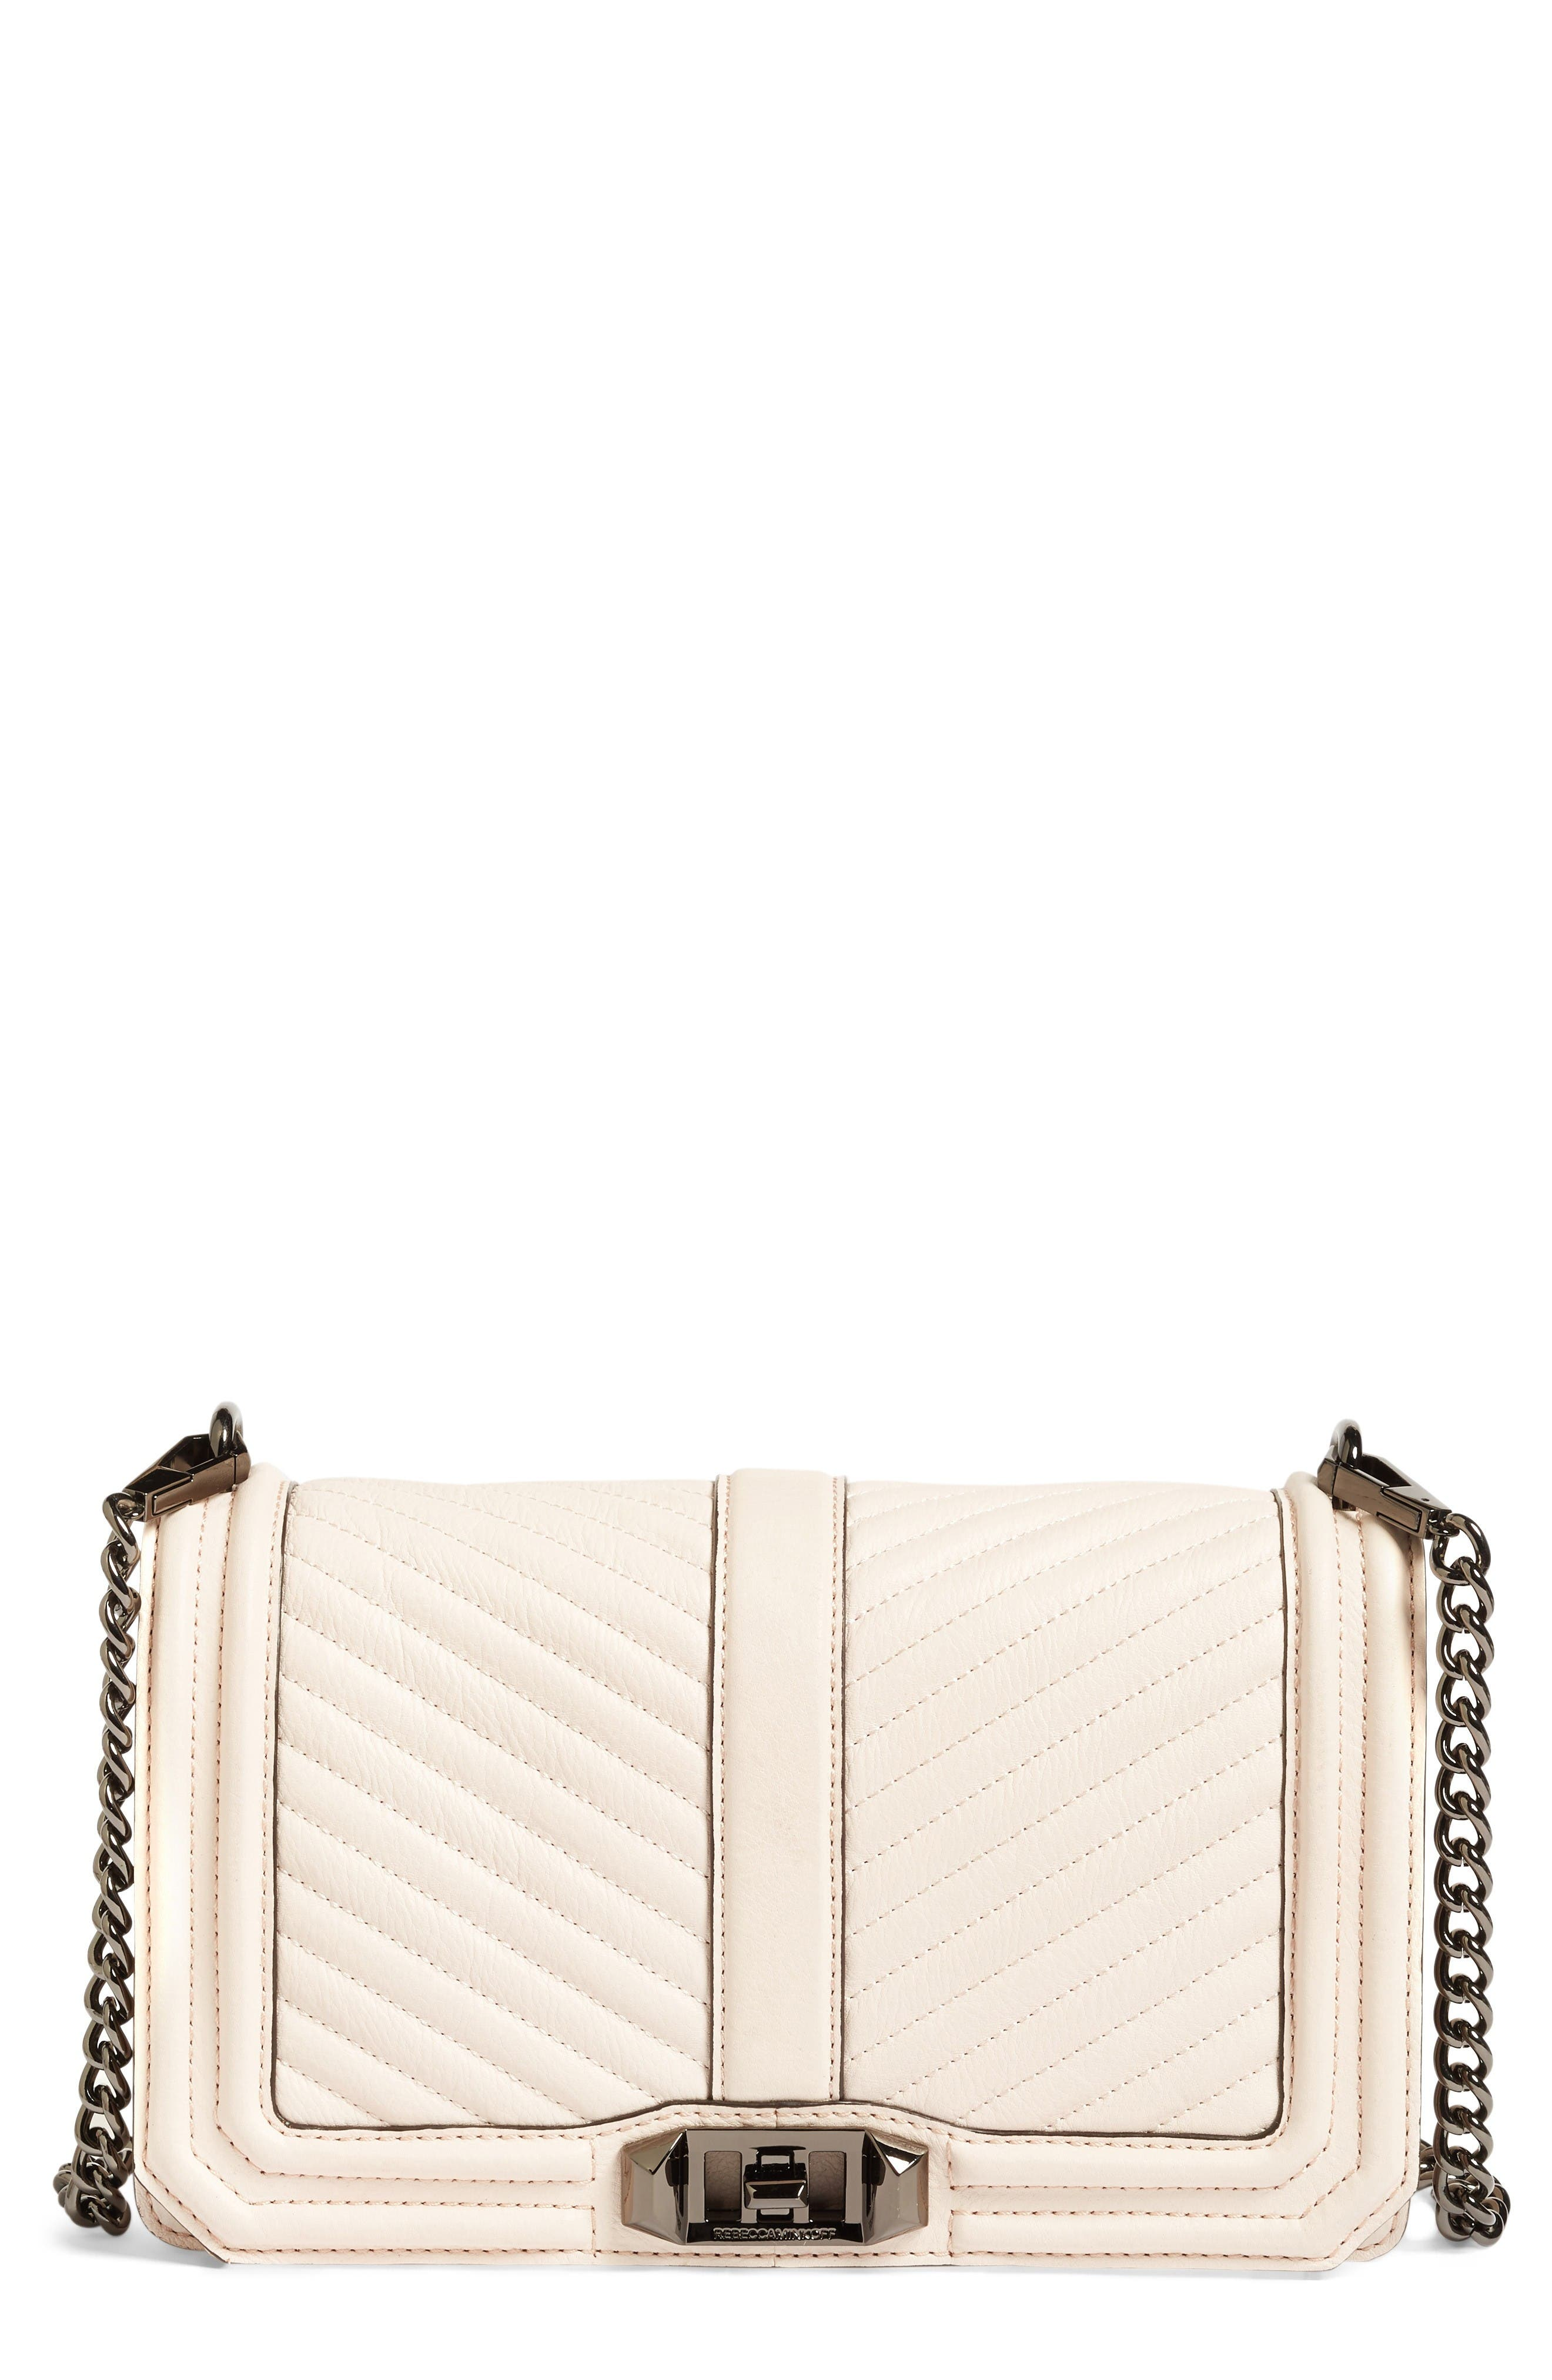 Alternate Image 1 Selected - Rebecca Minkoff 'Chevron Quilted Love' Crossbody Bag